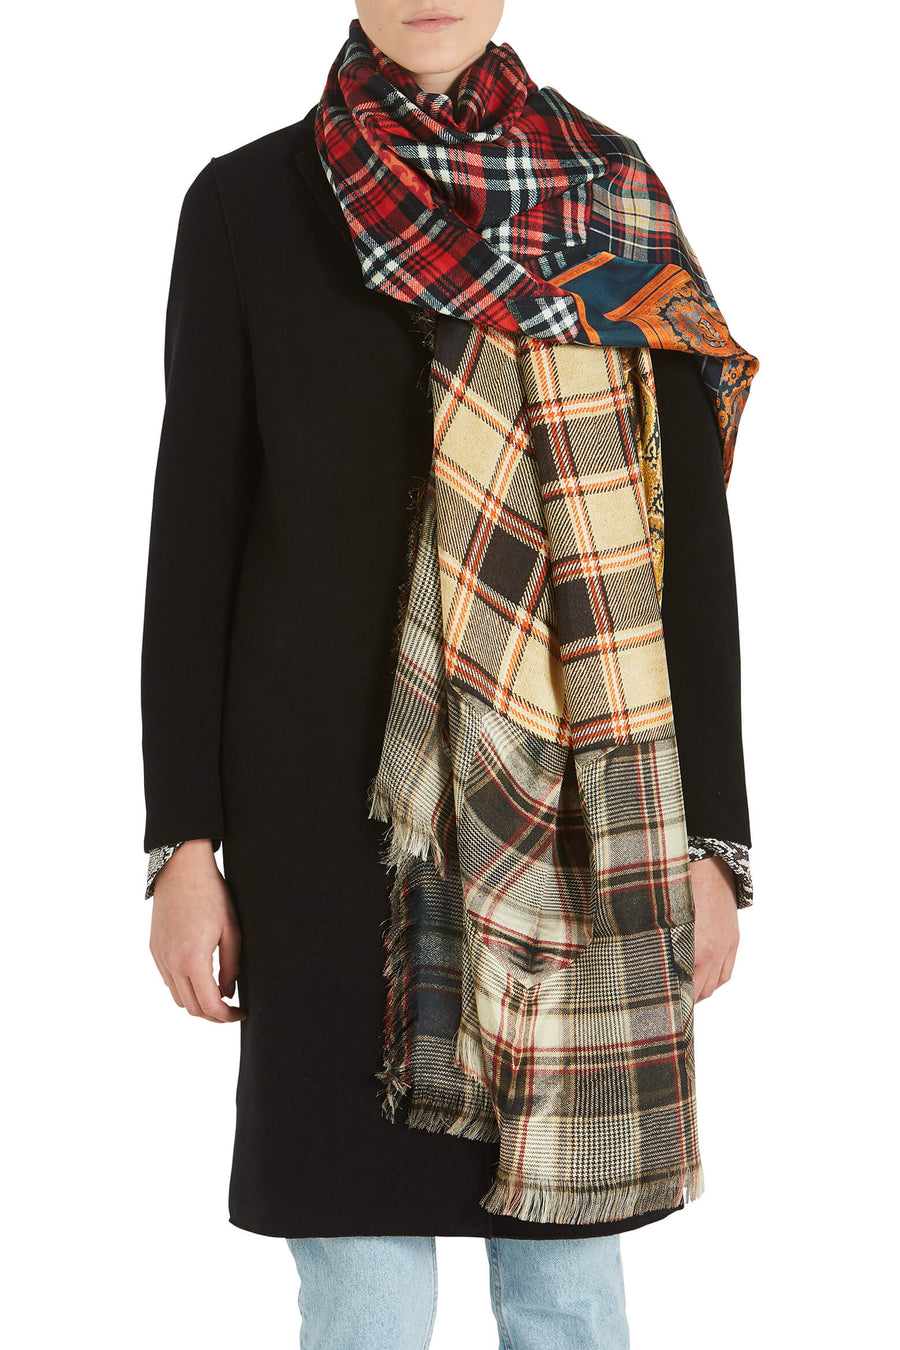 Pierre-Louis Mascia Tartan Scarf from The New Trend